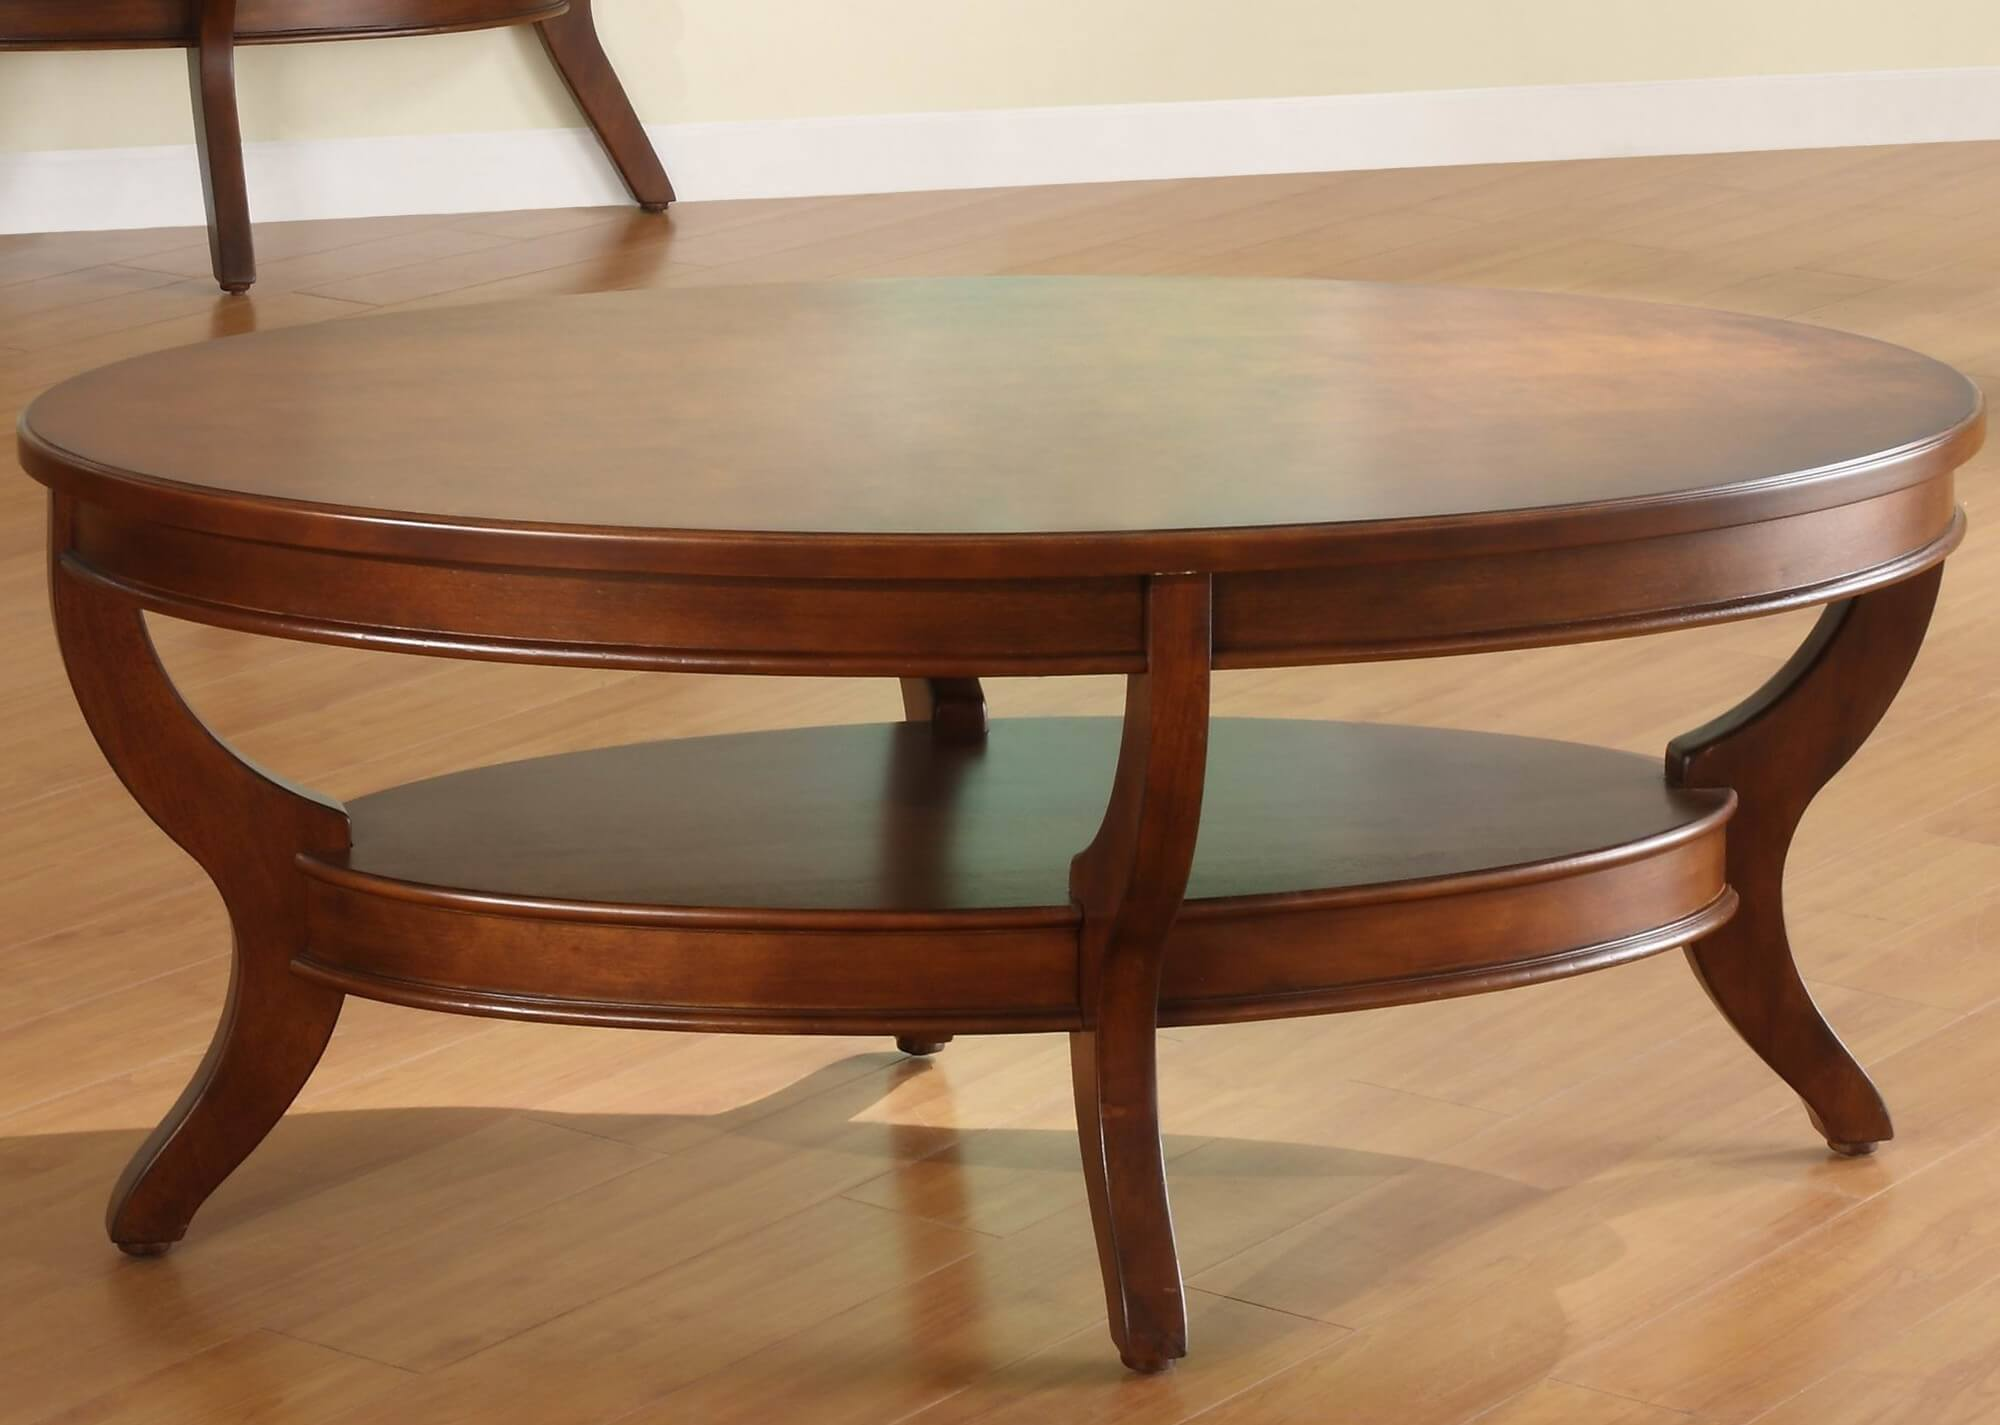 This intricately carved oval coffee table features two thick-slab surfaces, with a smaller lower tier for storage pinched between curved legs. Rich, warm toned stain helps it mix with almost any style room.